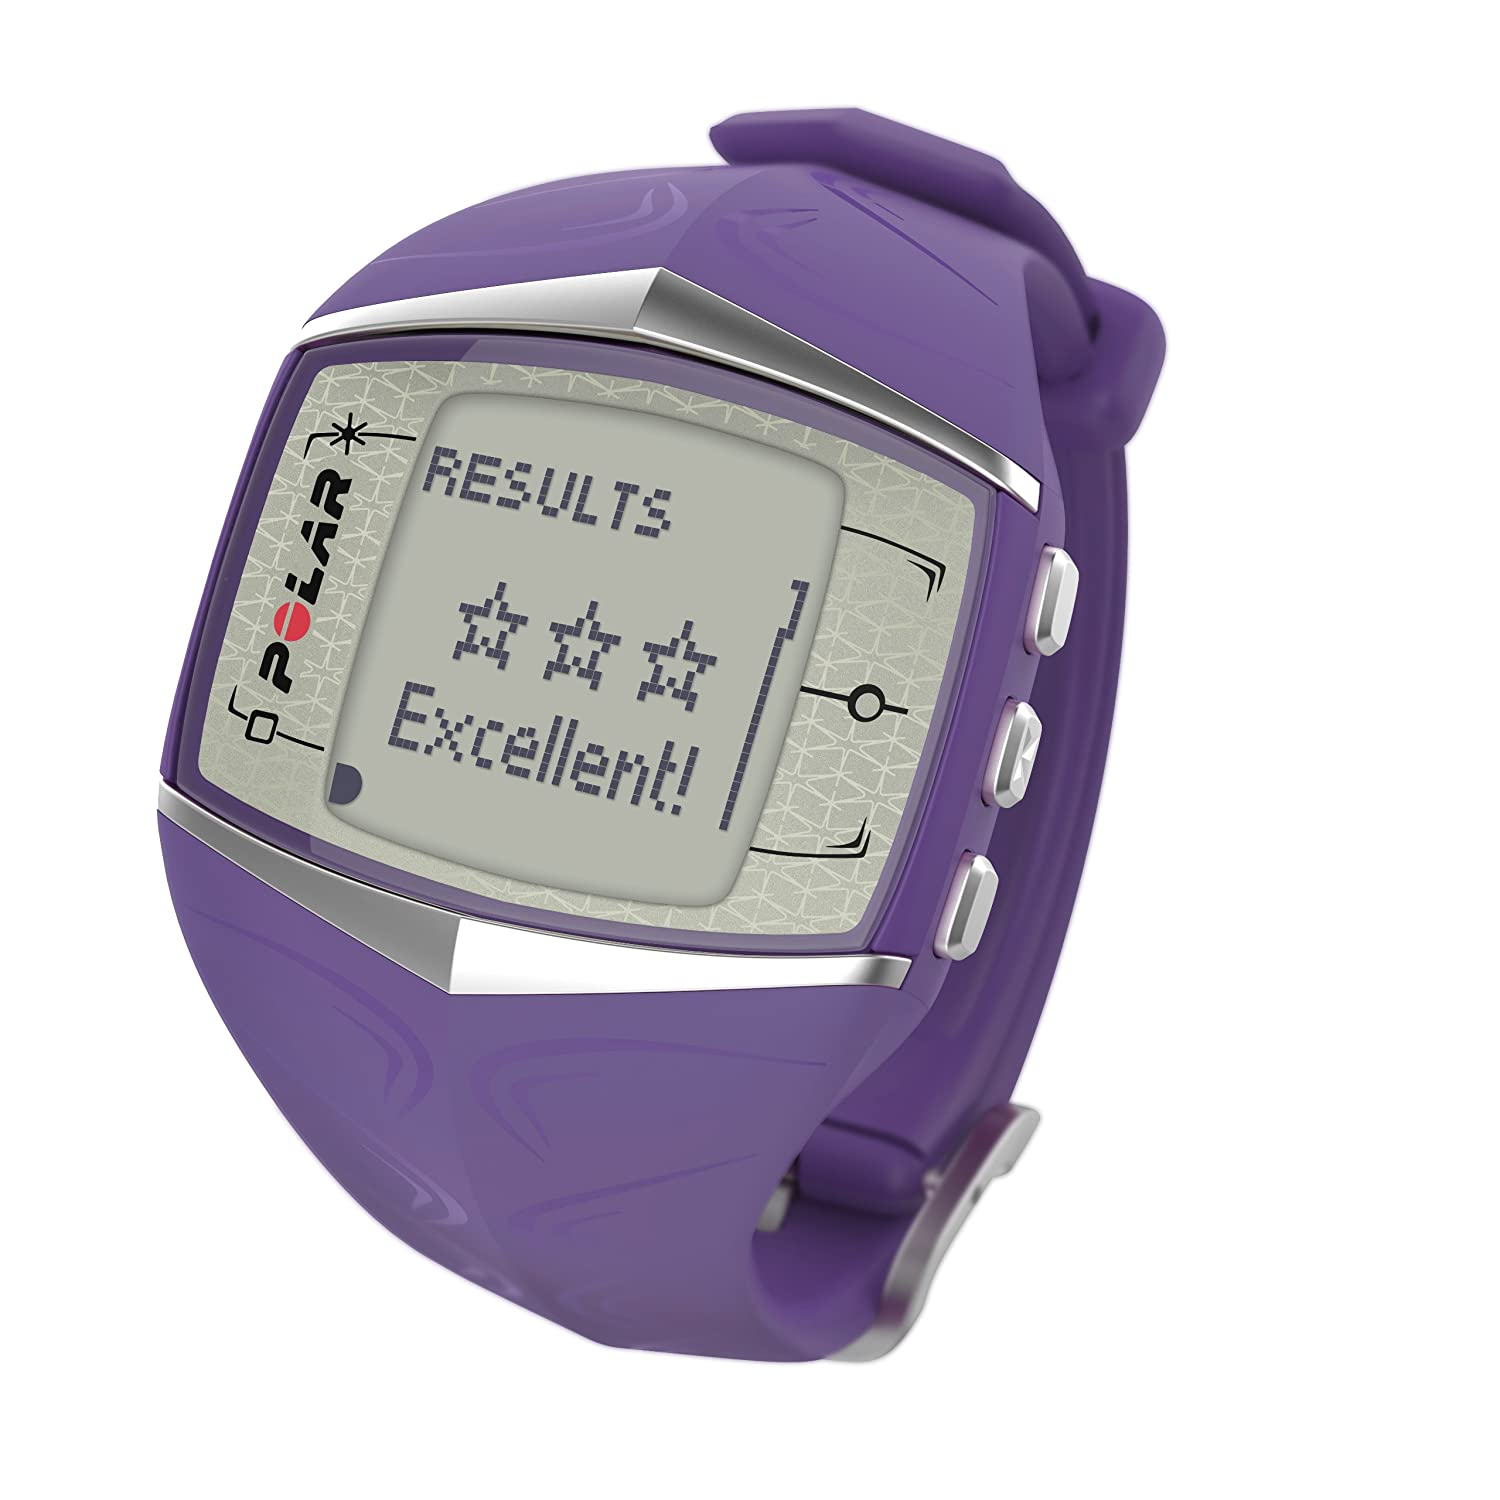 Polar FT60 Heart Rate Monitor Review